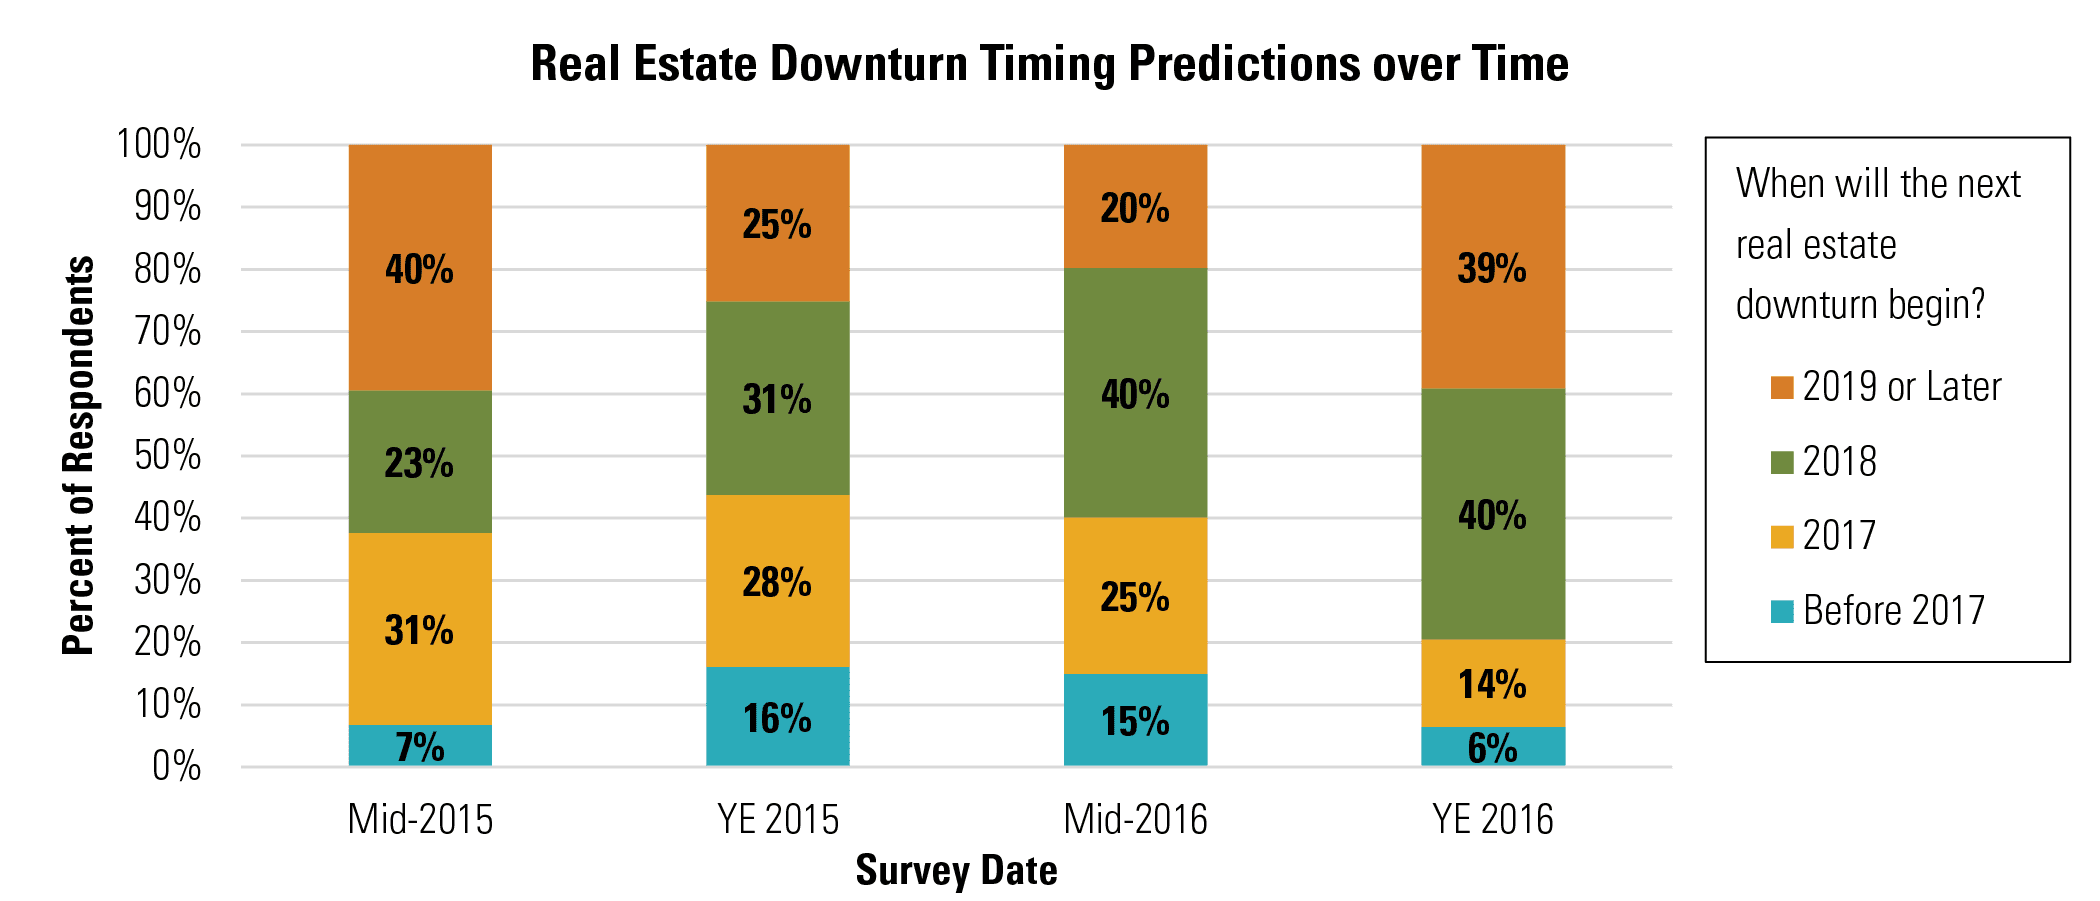 Real Estate Downturn Timing Predictions over Time